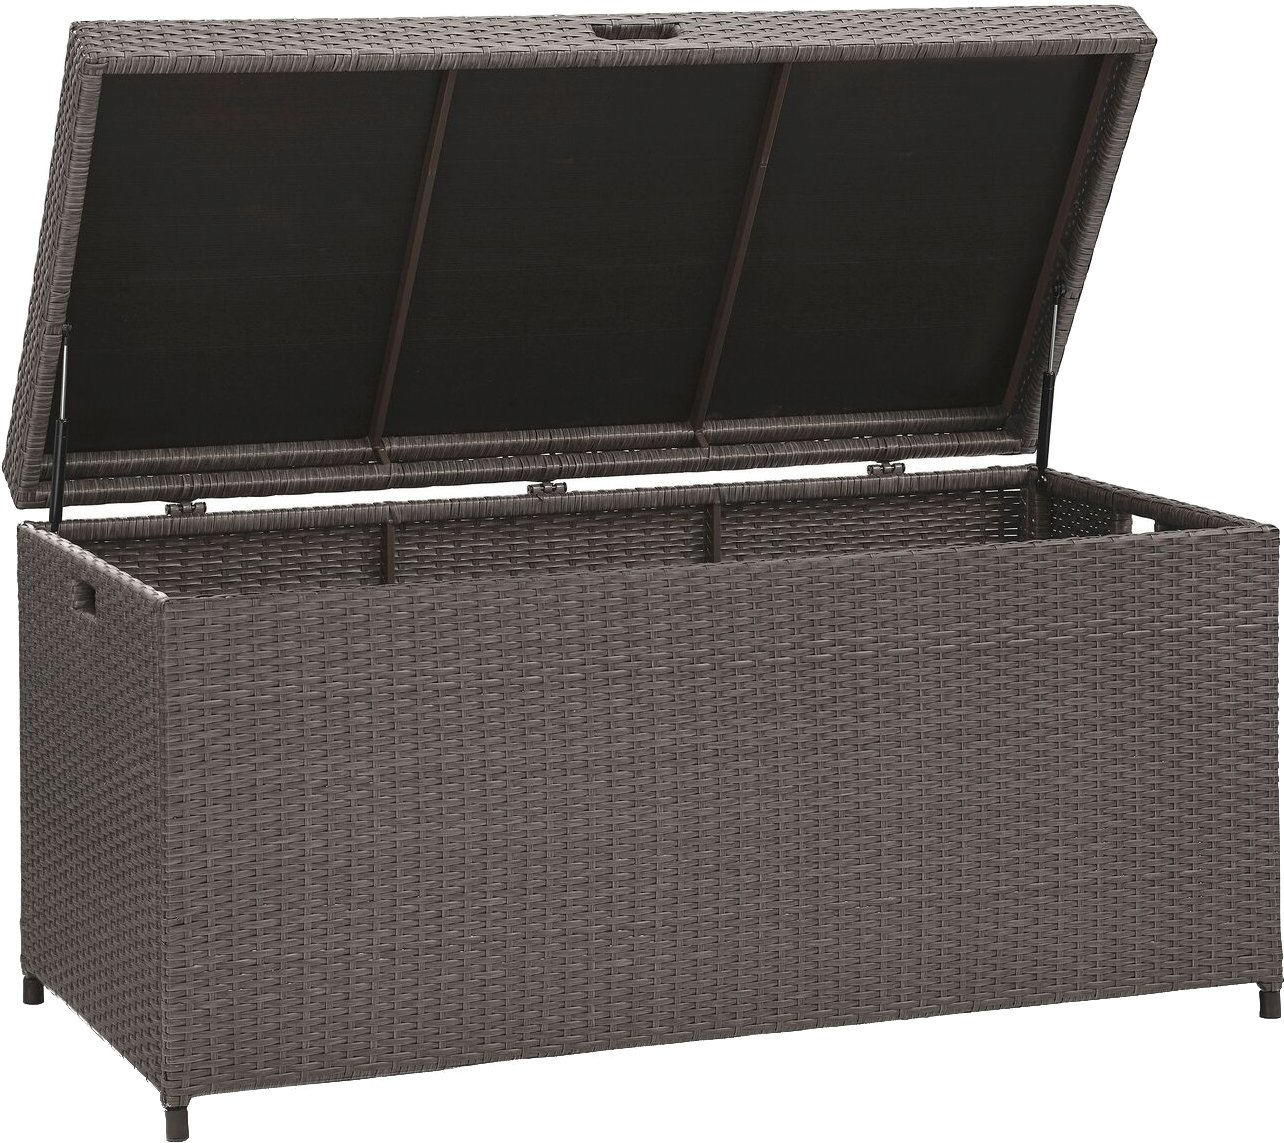 Crosley Furniture Palm Harbor Outdoor Wicker Storage Bin - Grey CO7300-WG